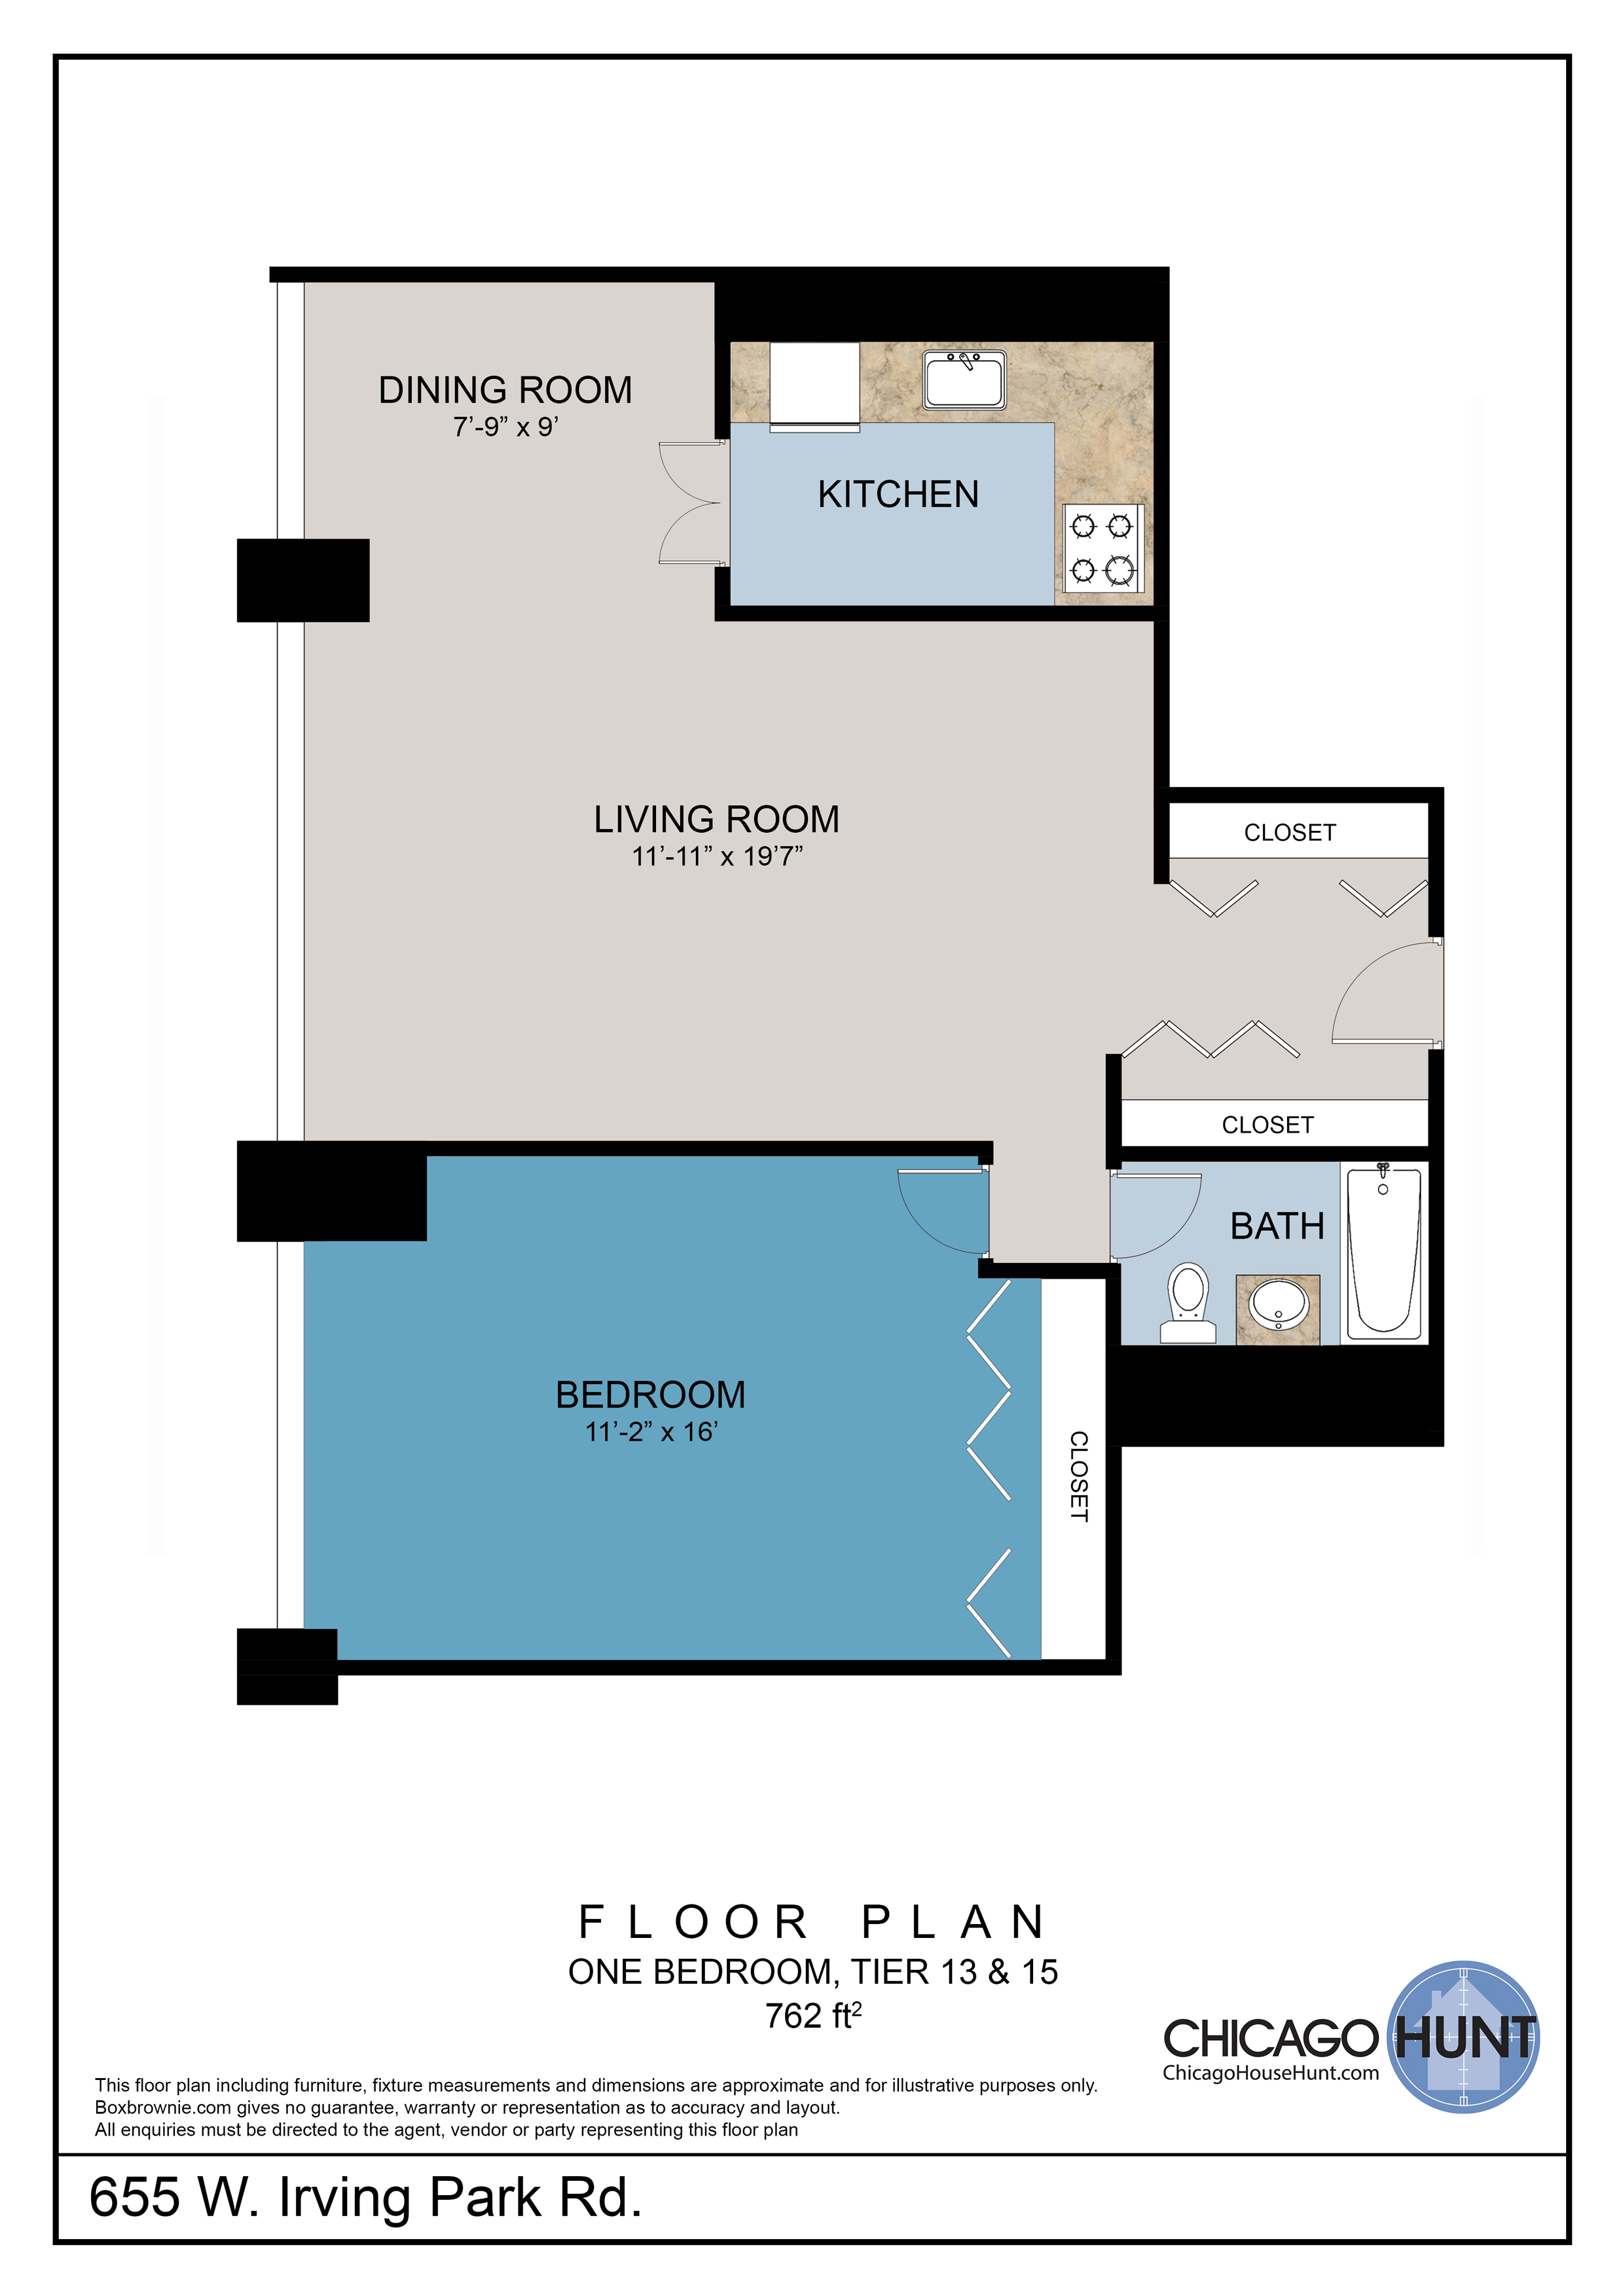 655 Irving Park, Park Place Towere - Floor Plan - Tier 13 & 15